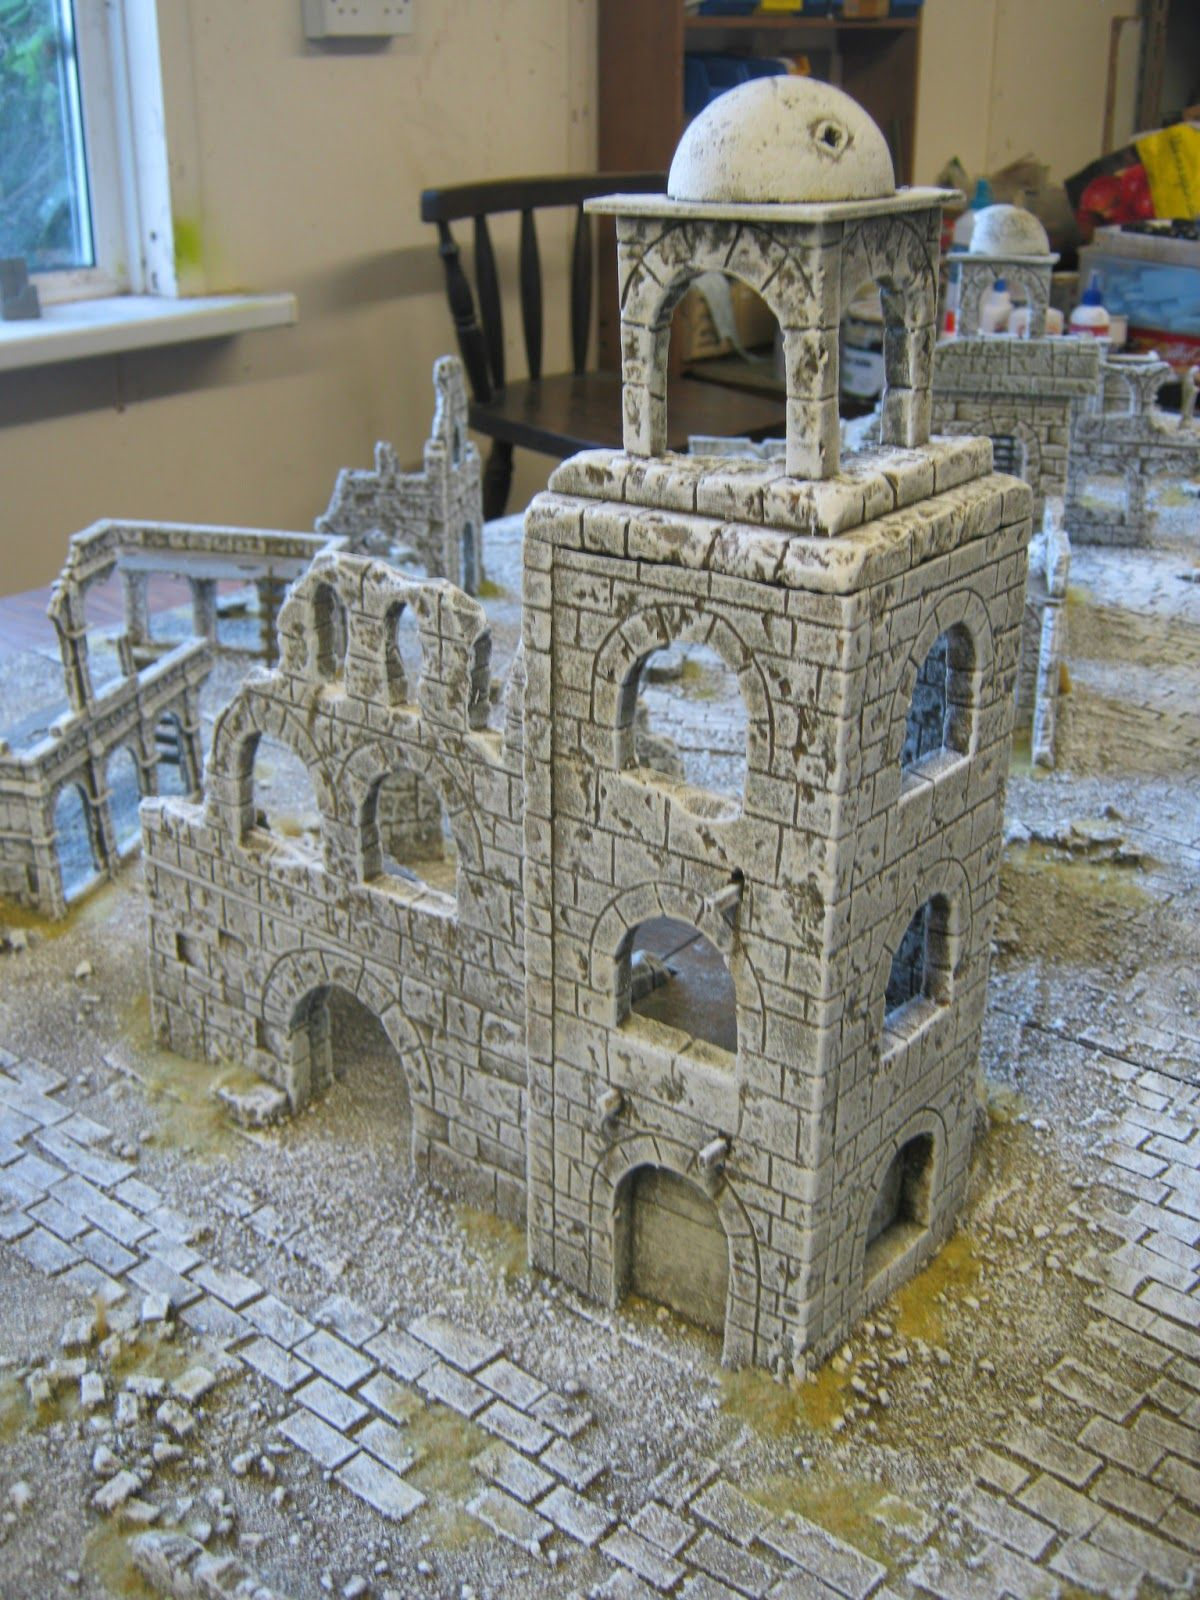 Pin by JHS on 01 Environment TableTop | Wargaming terrain